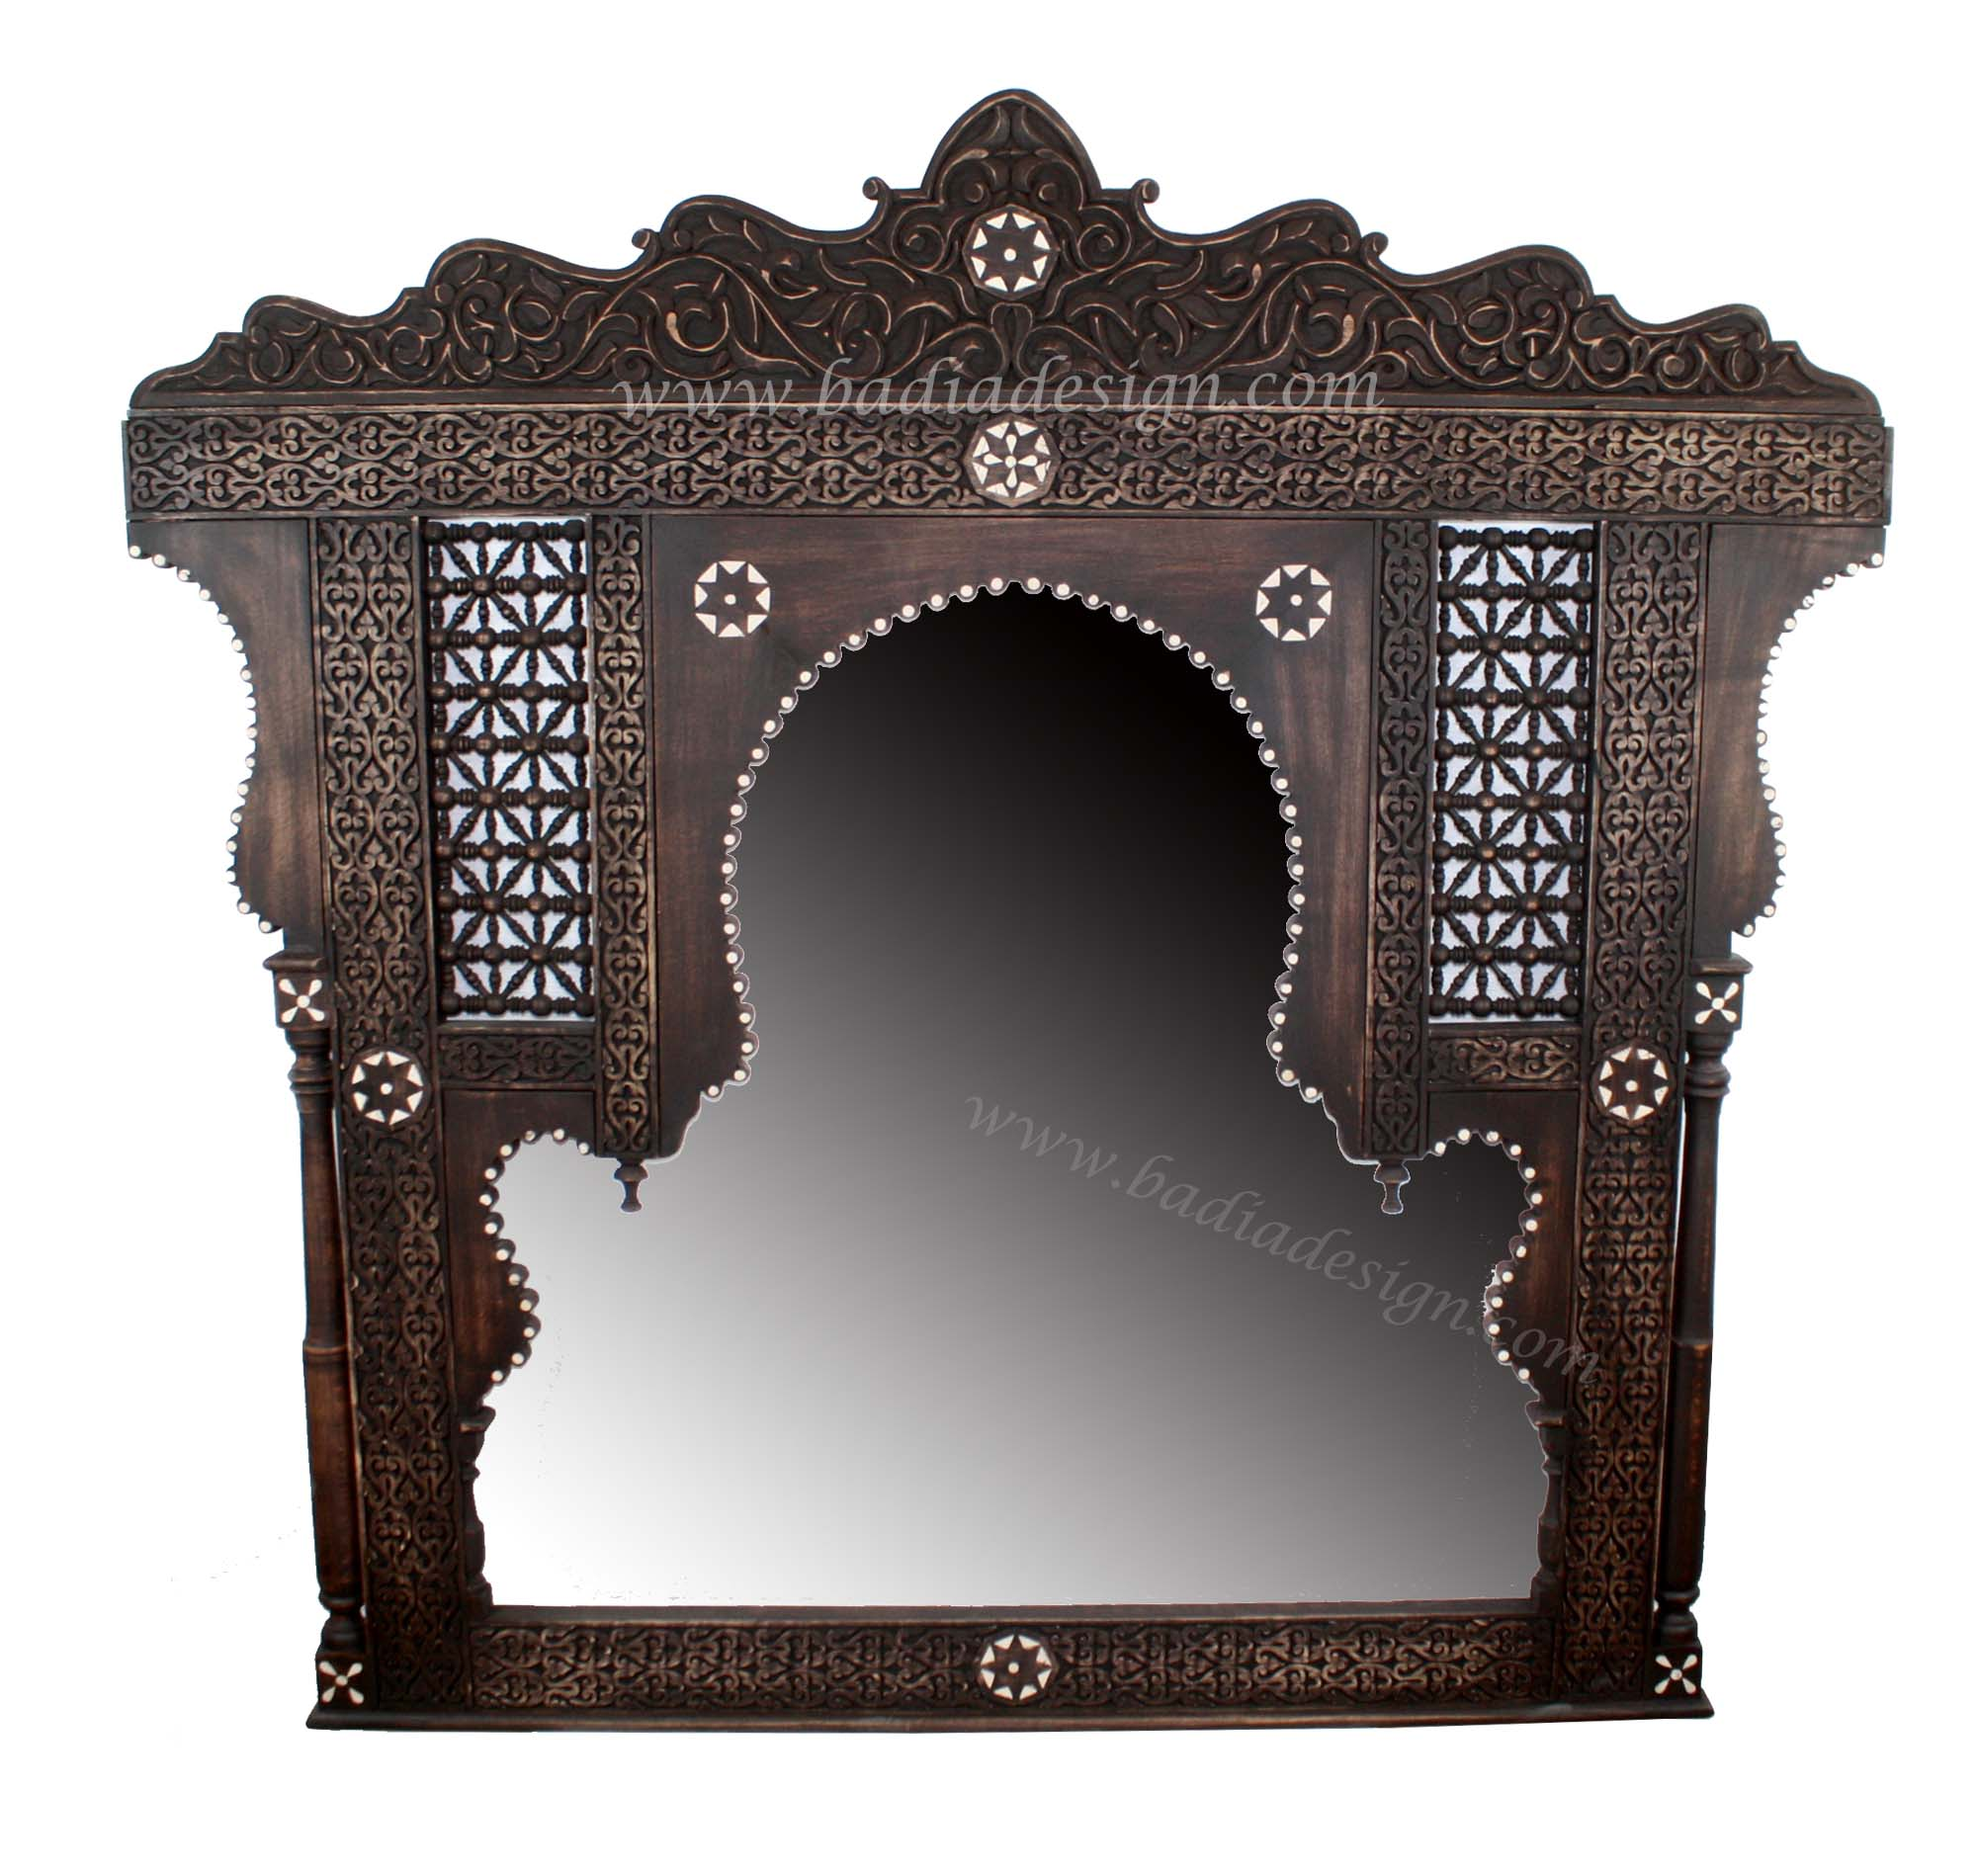 Moroccan Bone Inlay Mirror with Wooden Frame